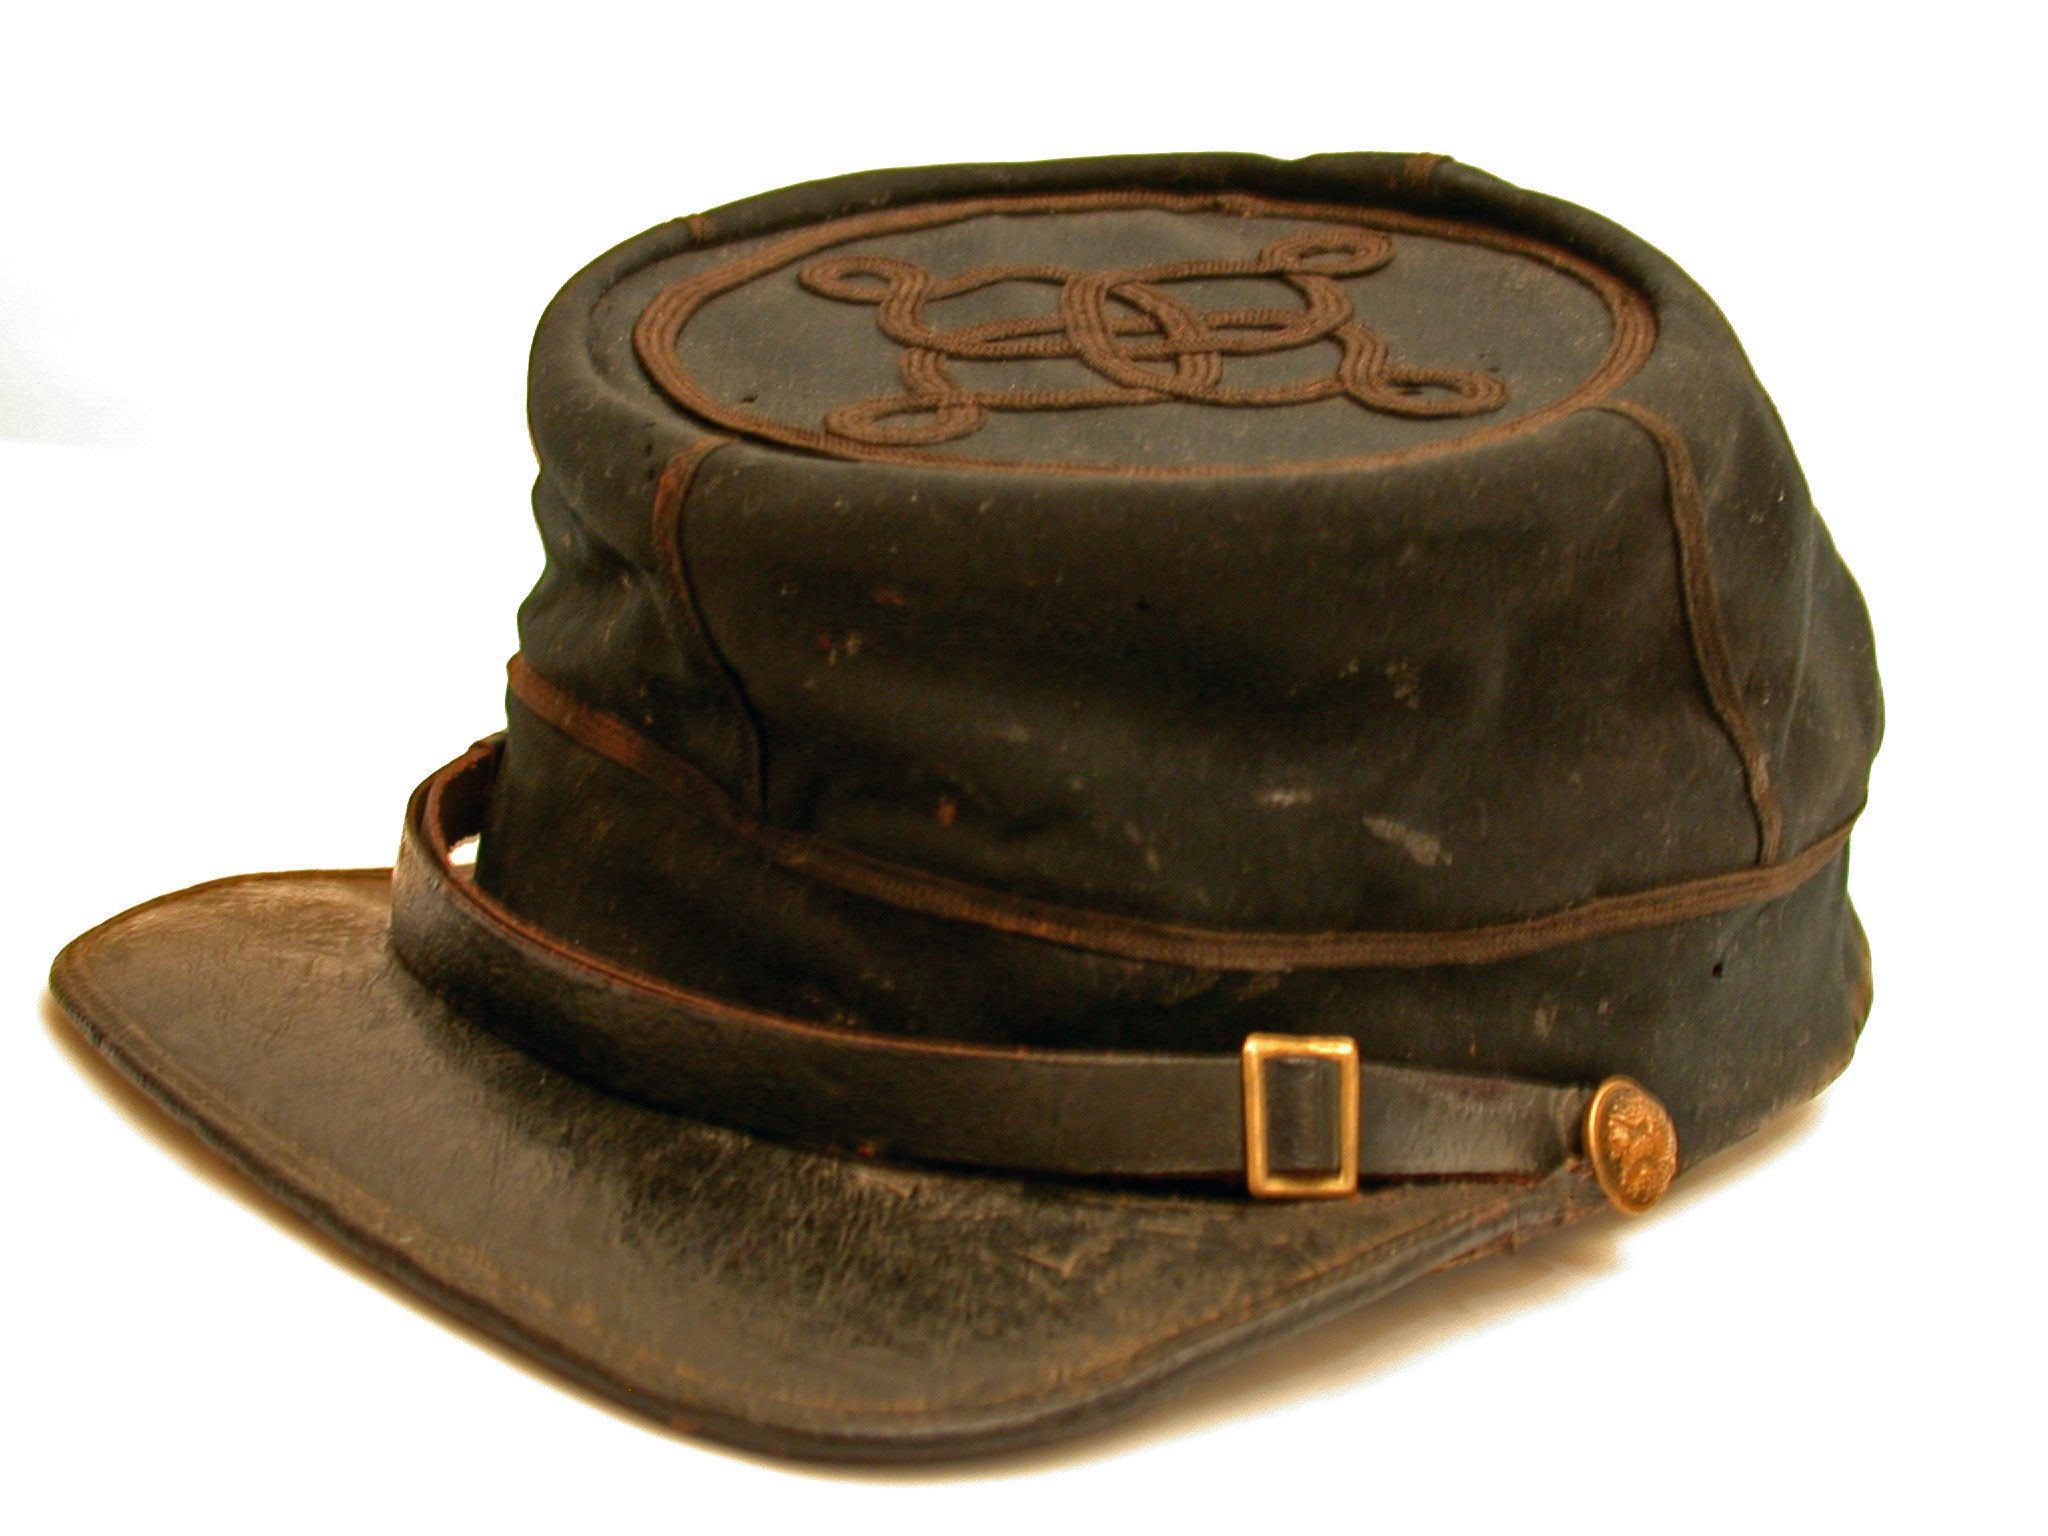 def59c53 Union Officer's Kepi. One row of braid on top and sides of hat indicates  1st or 2nd Lt.